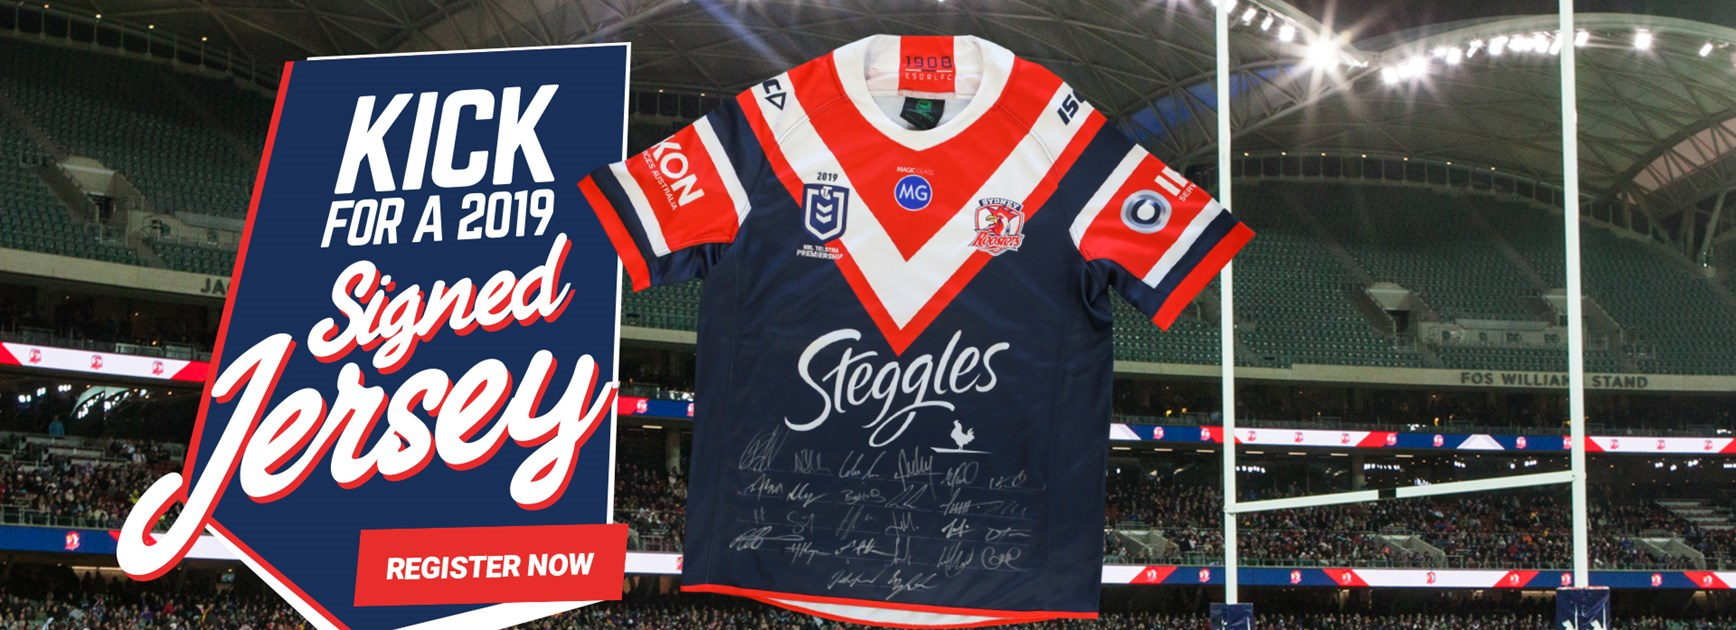 Kick For A 2019 Signed Jersey | Adelaide